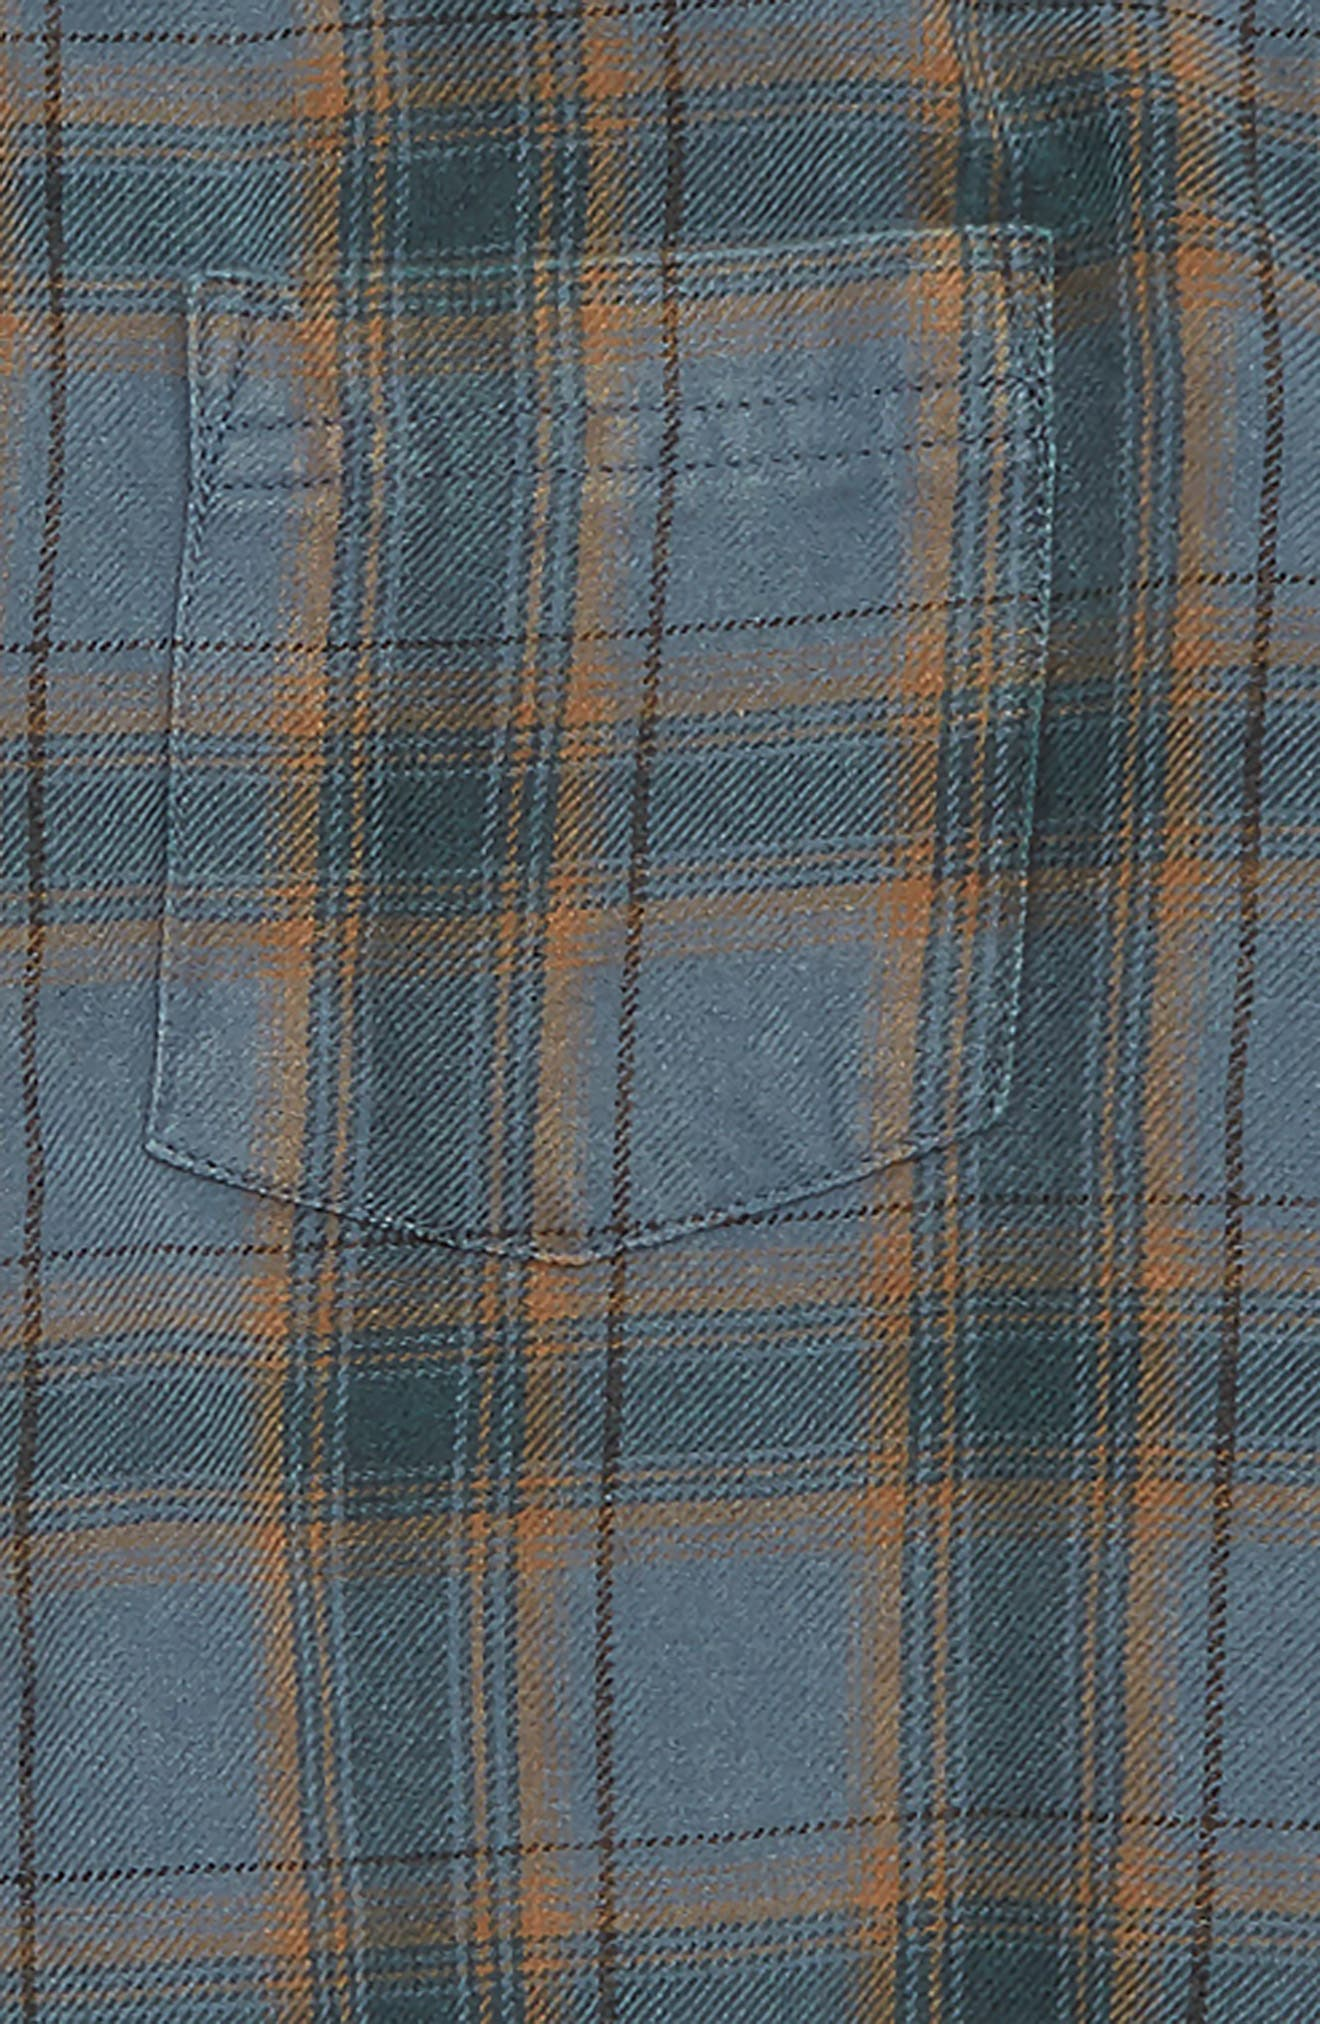 Washed Out Flannel Shirt,                             Alternate thumbnail 2, color,                             BLUE CHINOISE/ BROWN PLAID